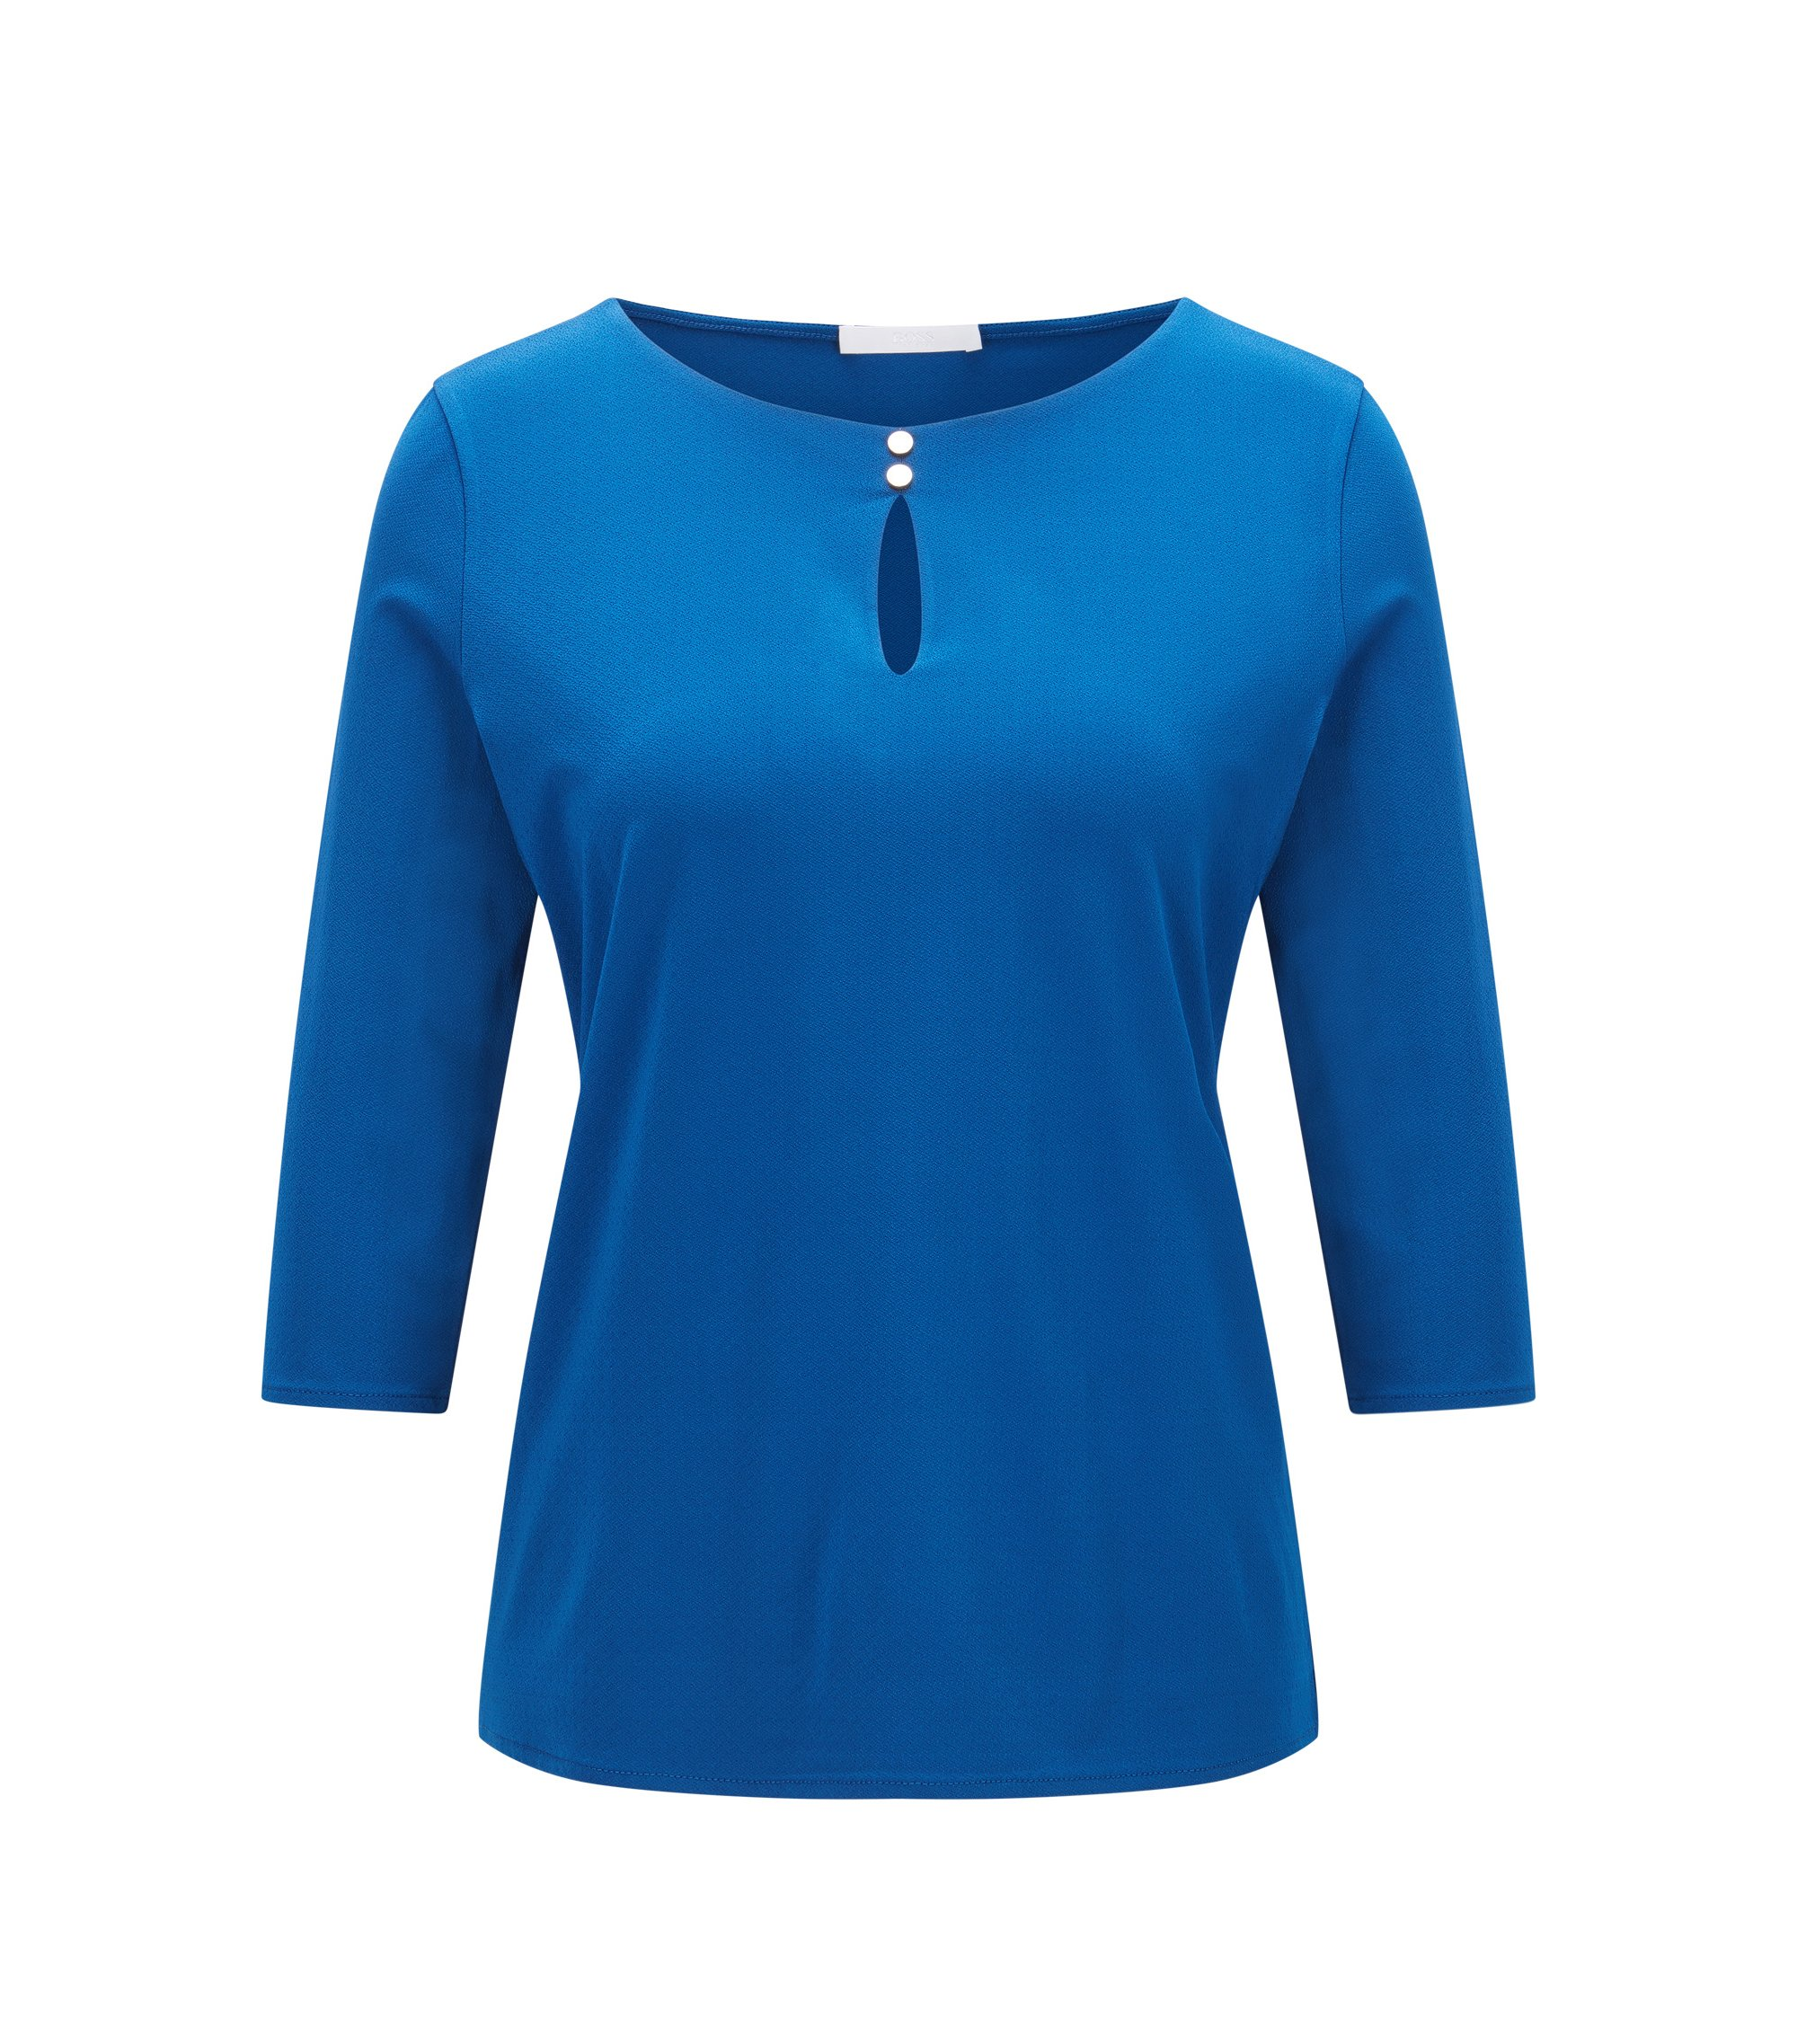 Regular-fit top in stretch crêpe jersey, Blue